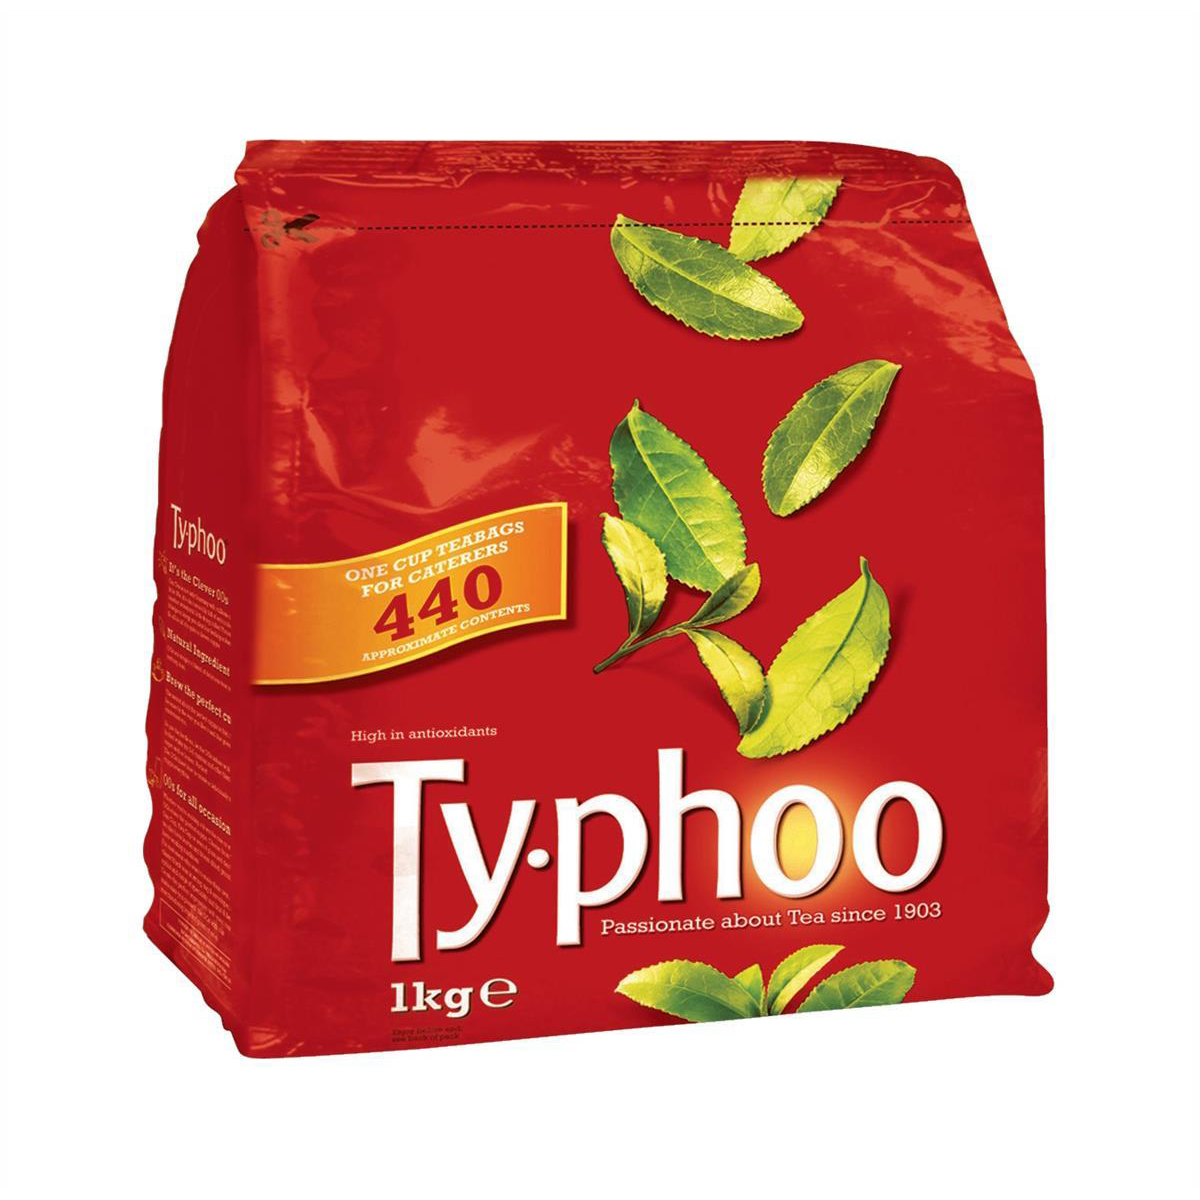 Typhoo Tea Bags Vacuum-packed 1 Cup Ref A01006 Pack 440